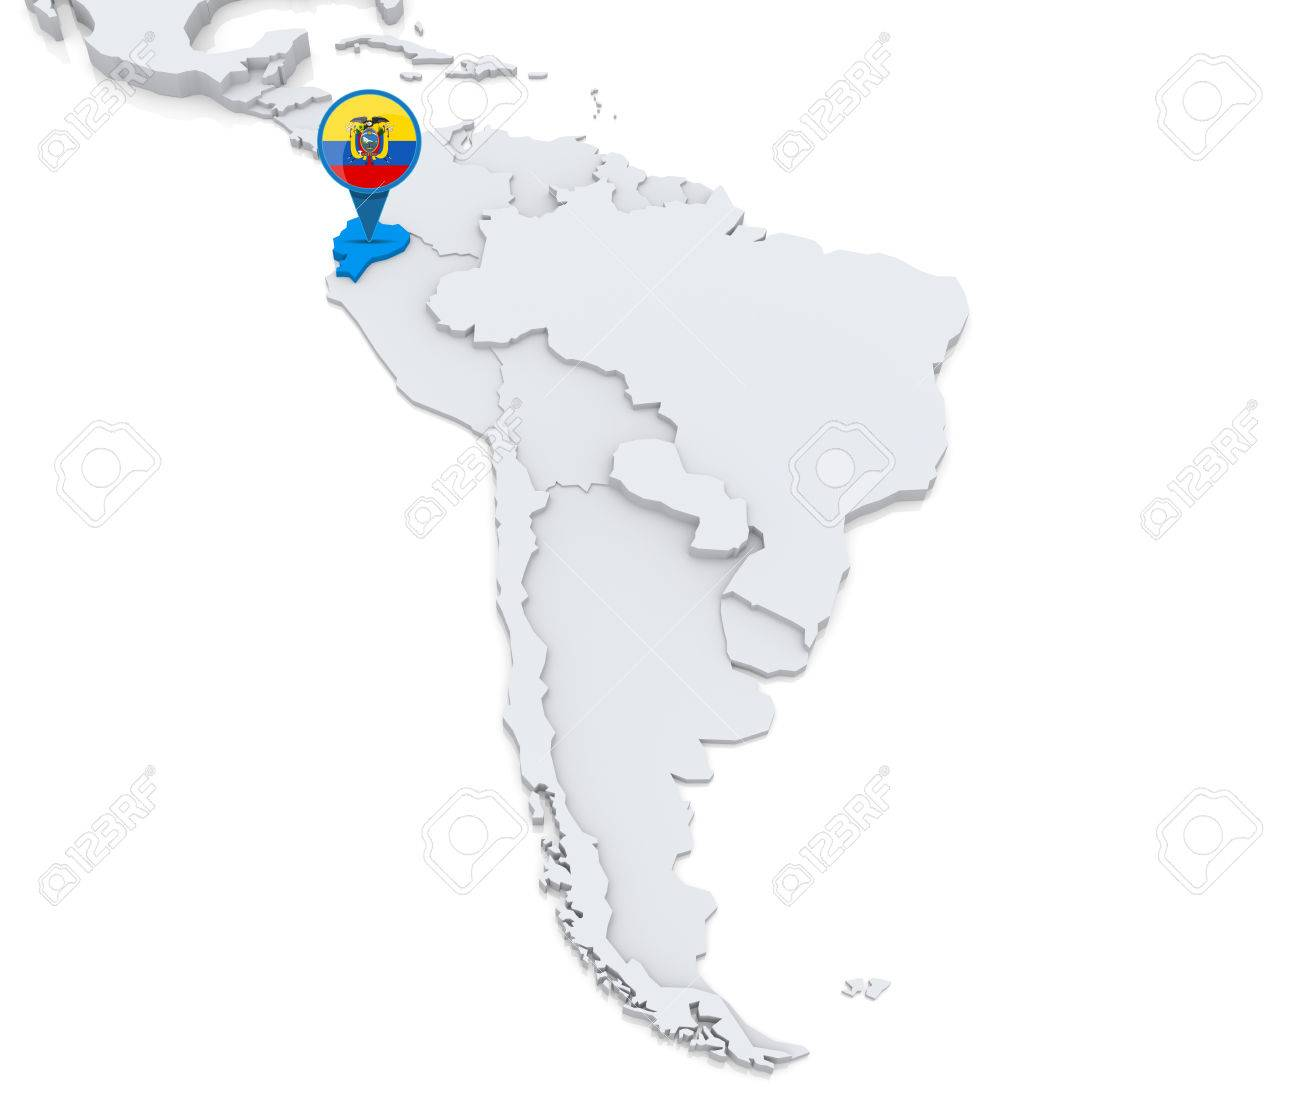 Highlighted Ecuador On Map Of South America With National Flag - Ecuador south america map